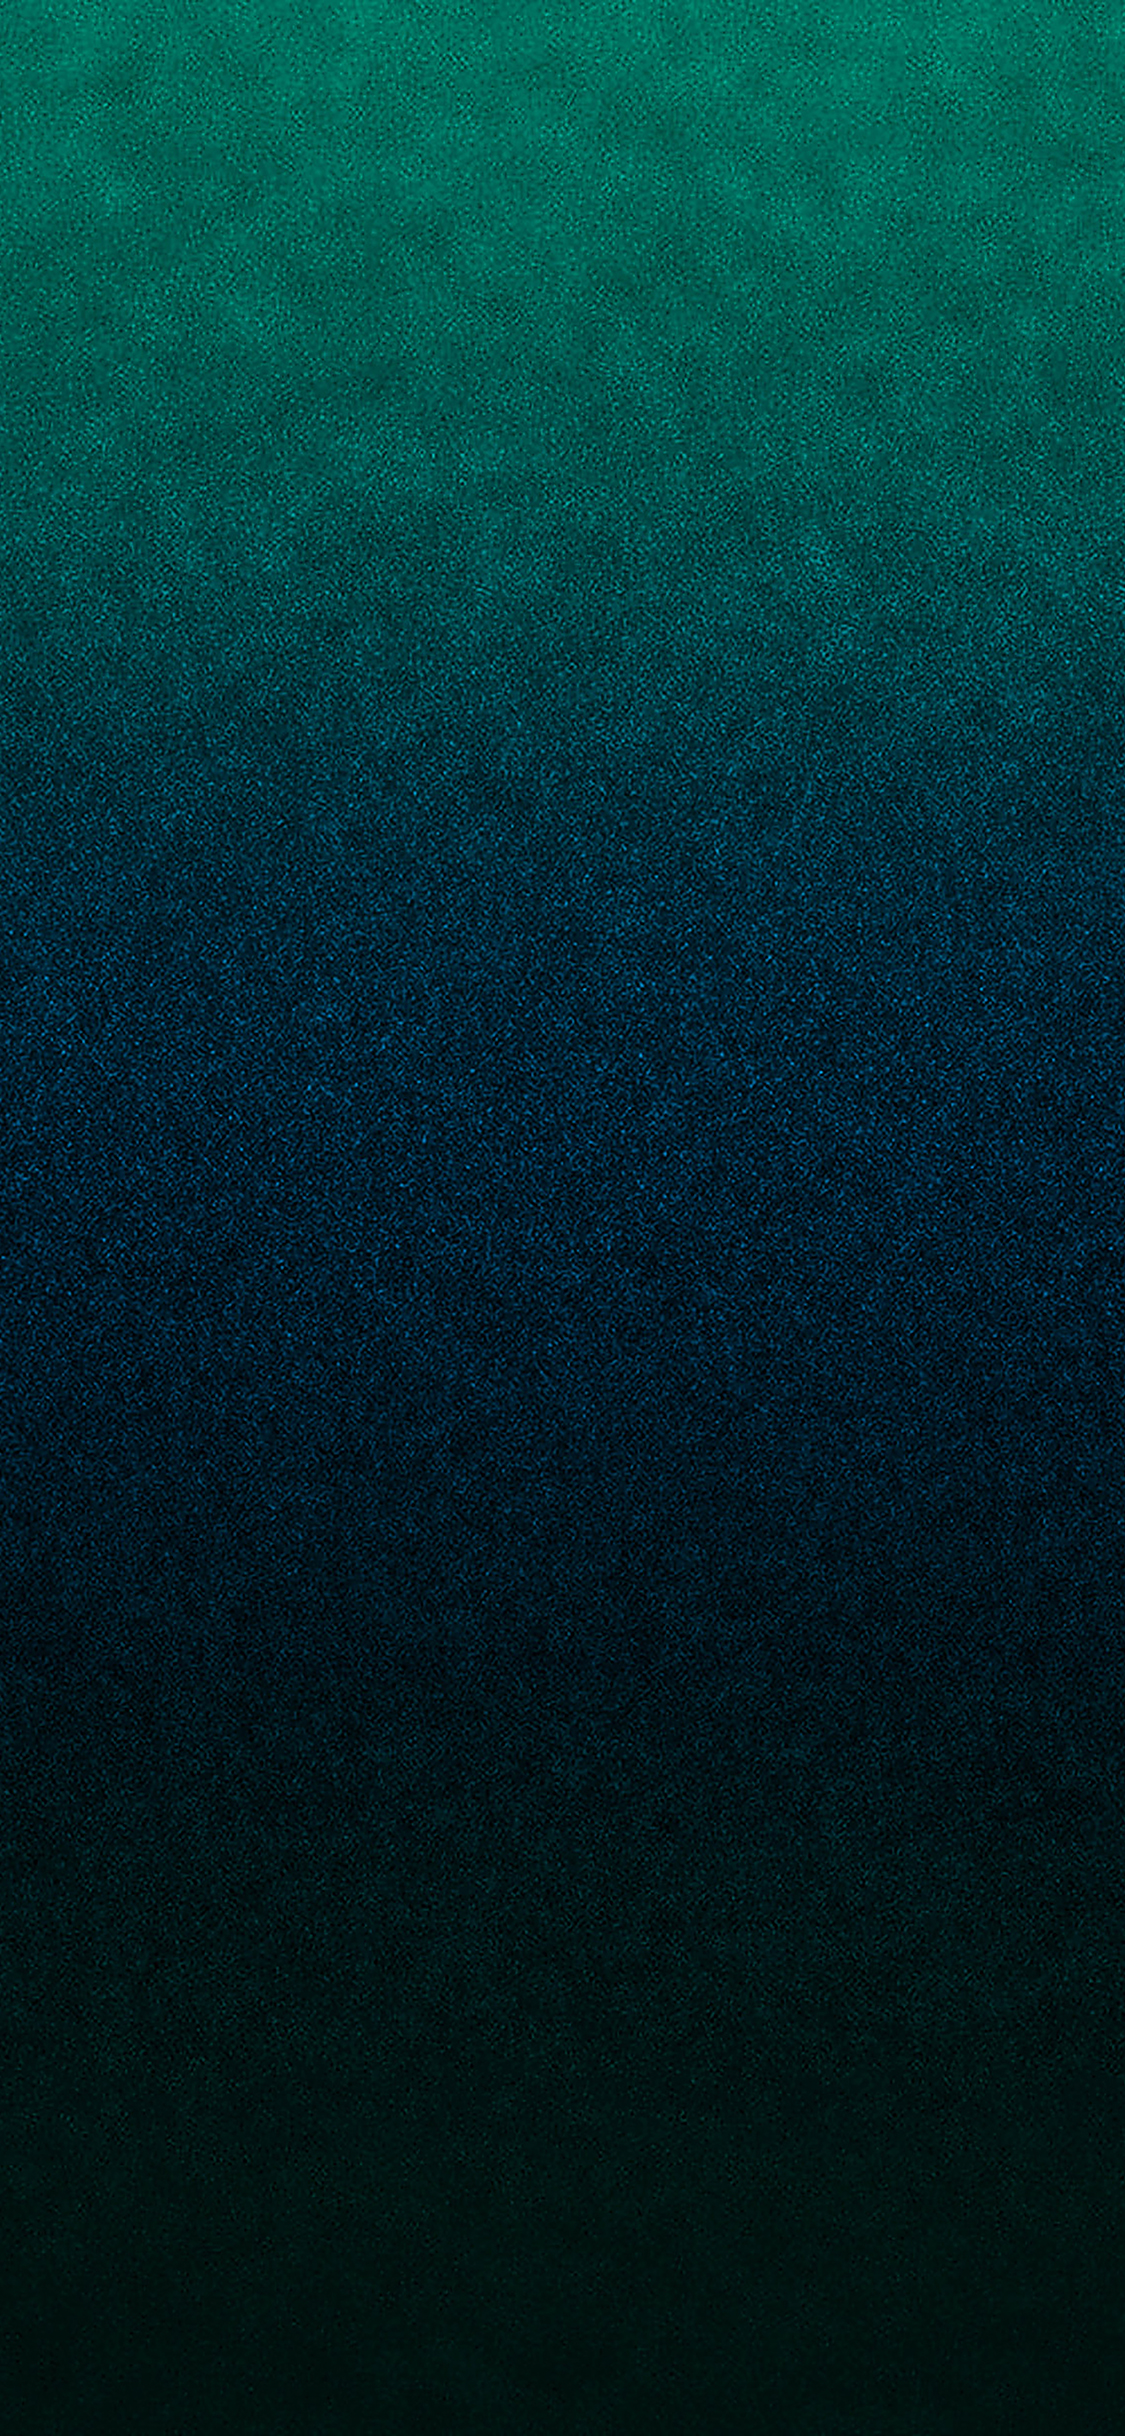 iPhoneXpapers.com-Apple-iPhone-wallpaper-vb22-wallpaper-party-saturday-blue-gradation